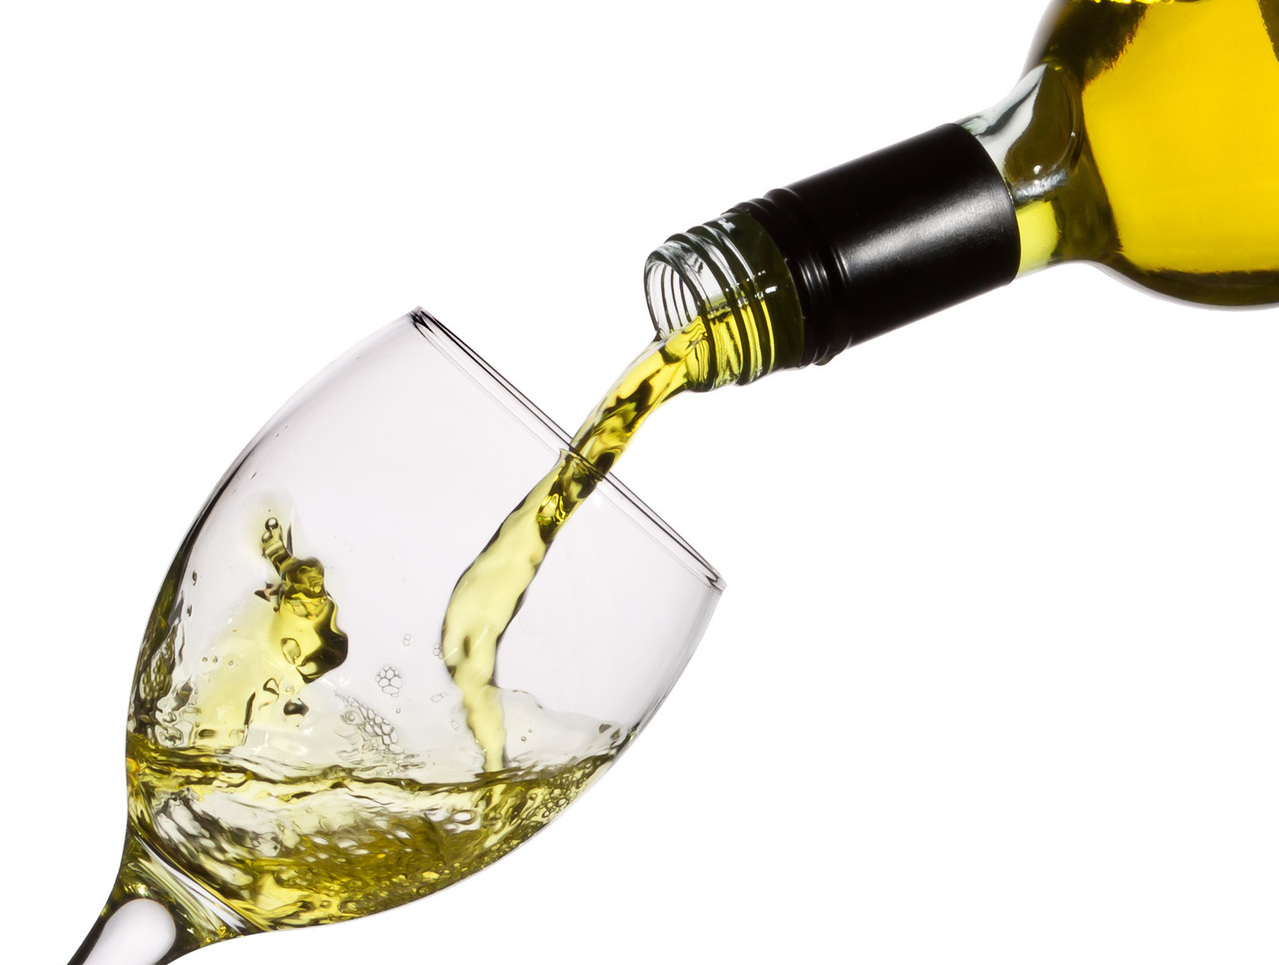 White wine being artfully poured into a glass